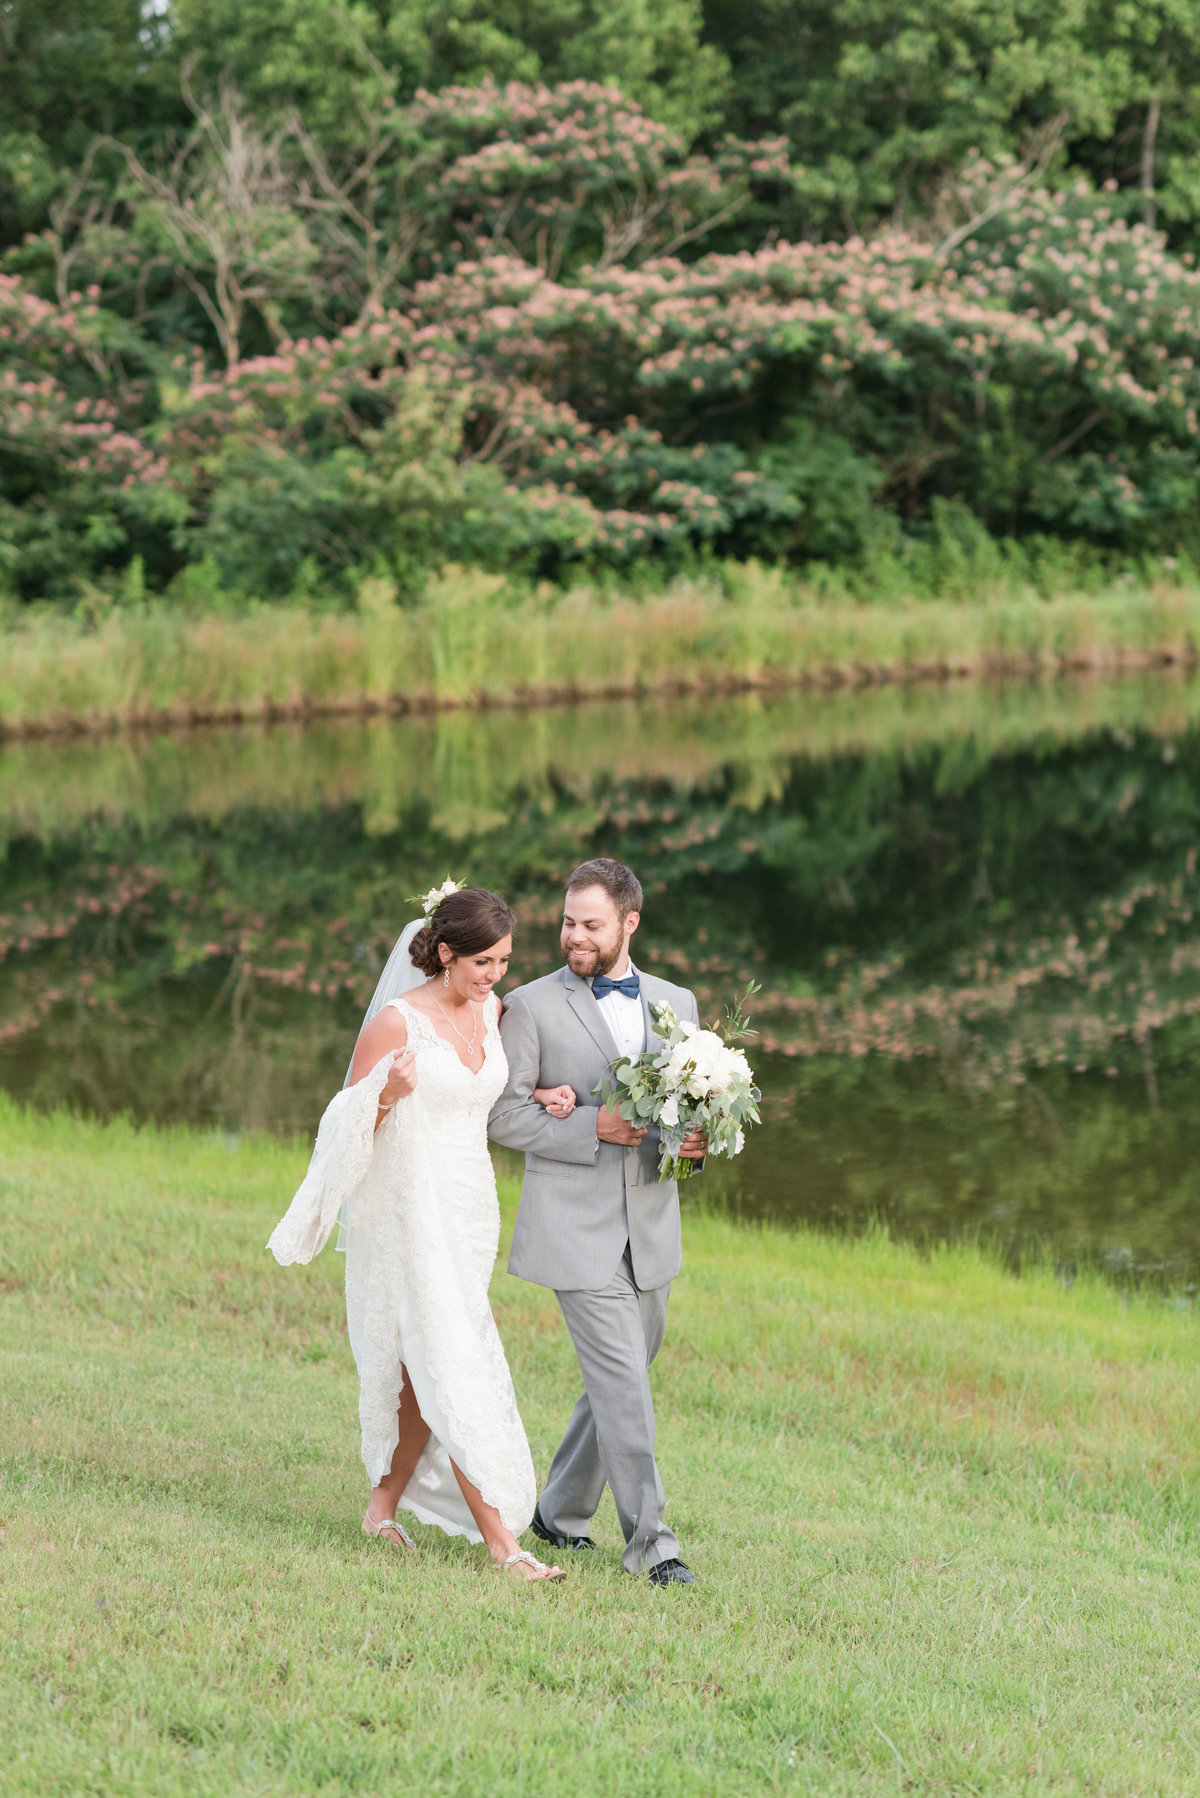 An Elegant Meadows At Walnut Cove, Michelle and Sara Photography, Walnut Cove11